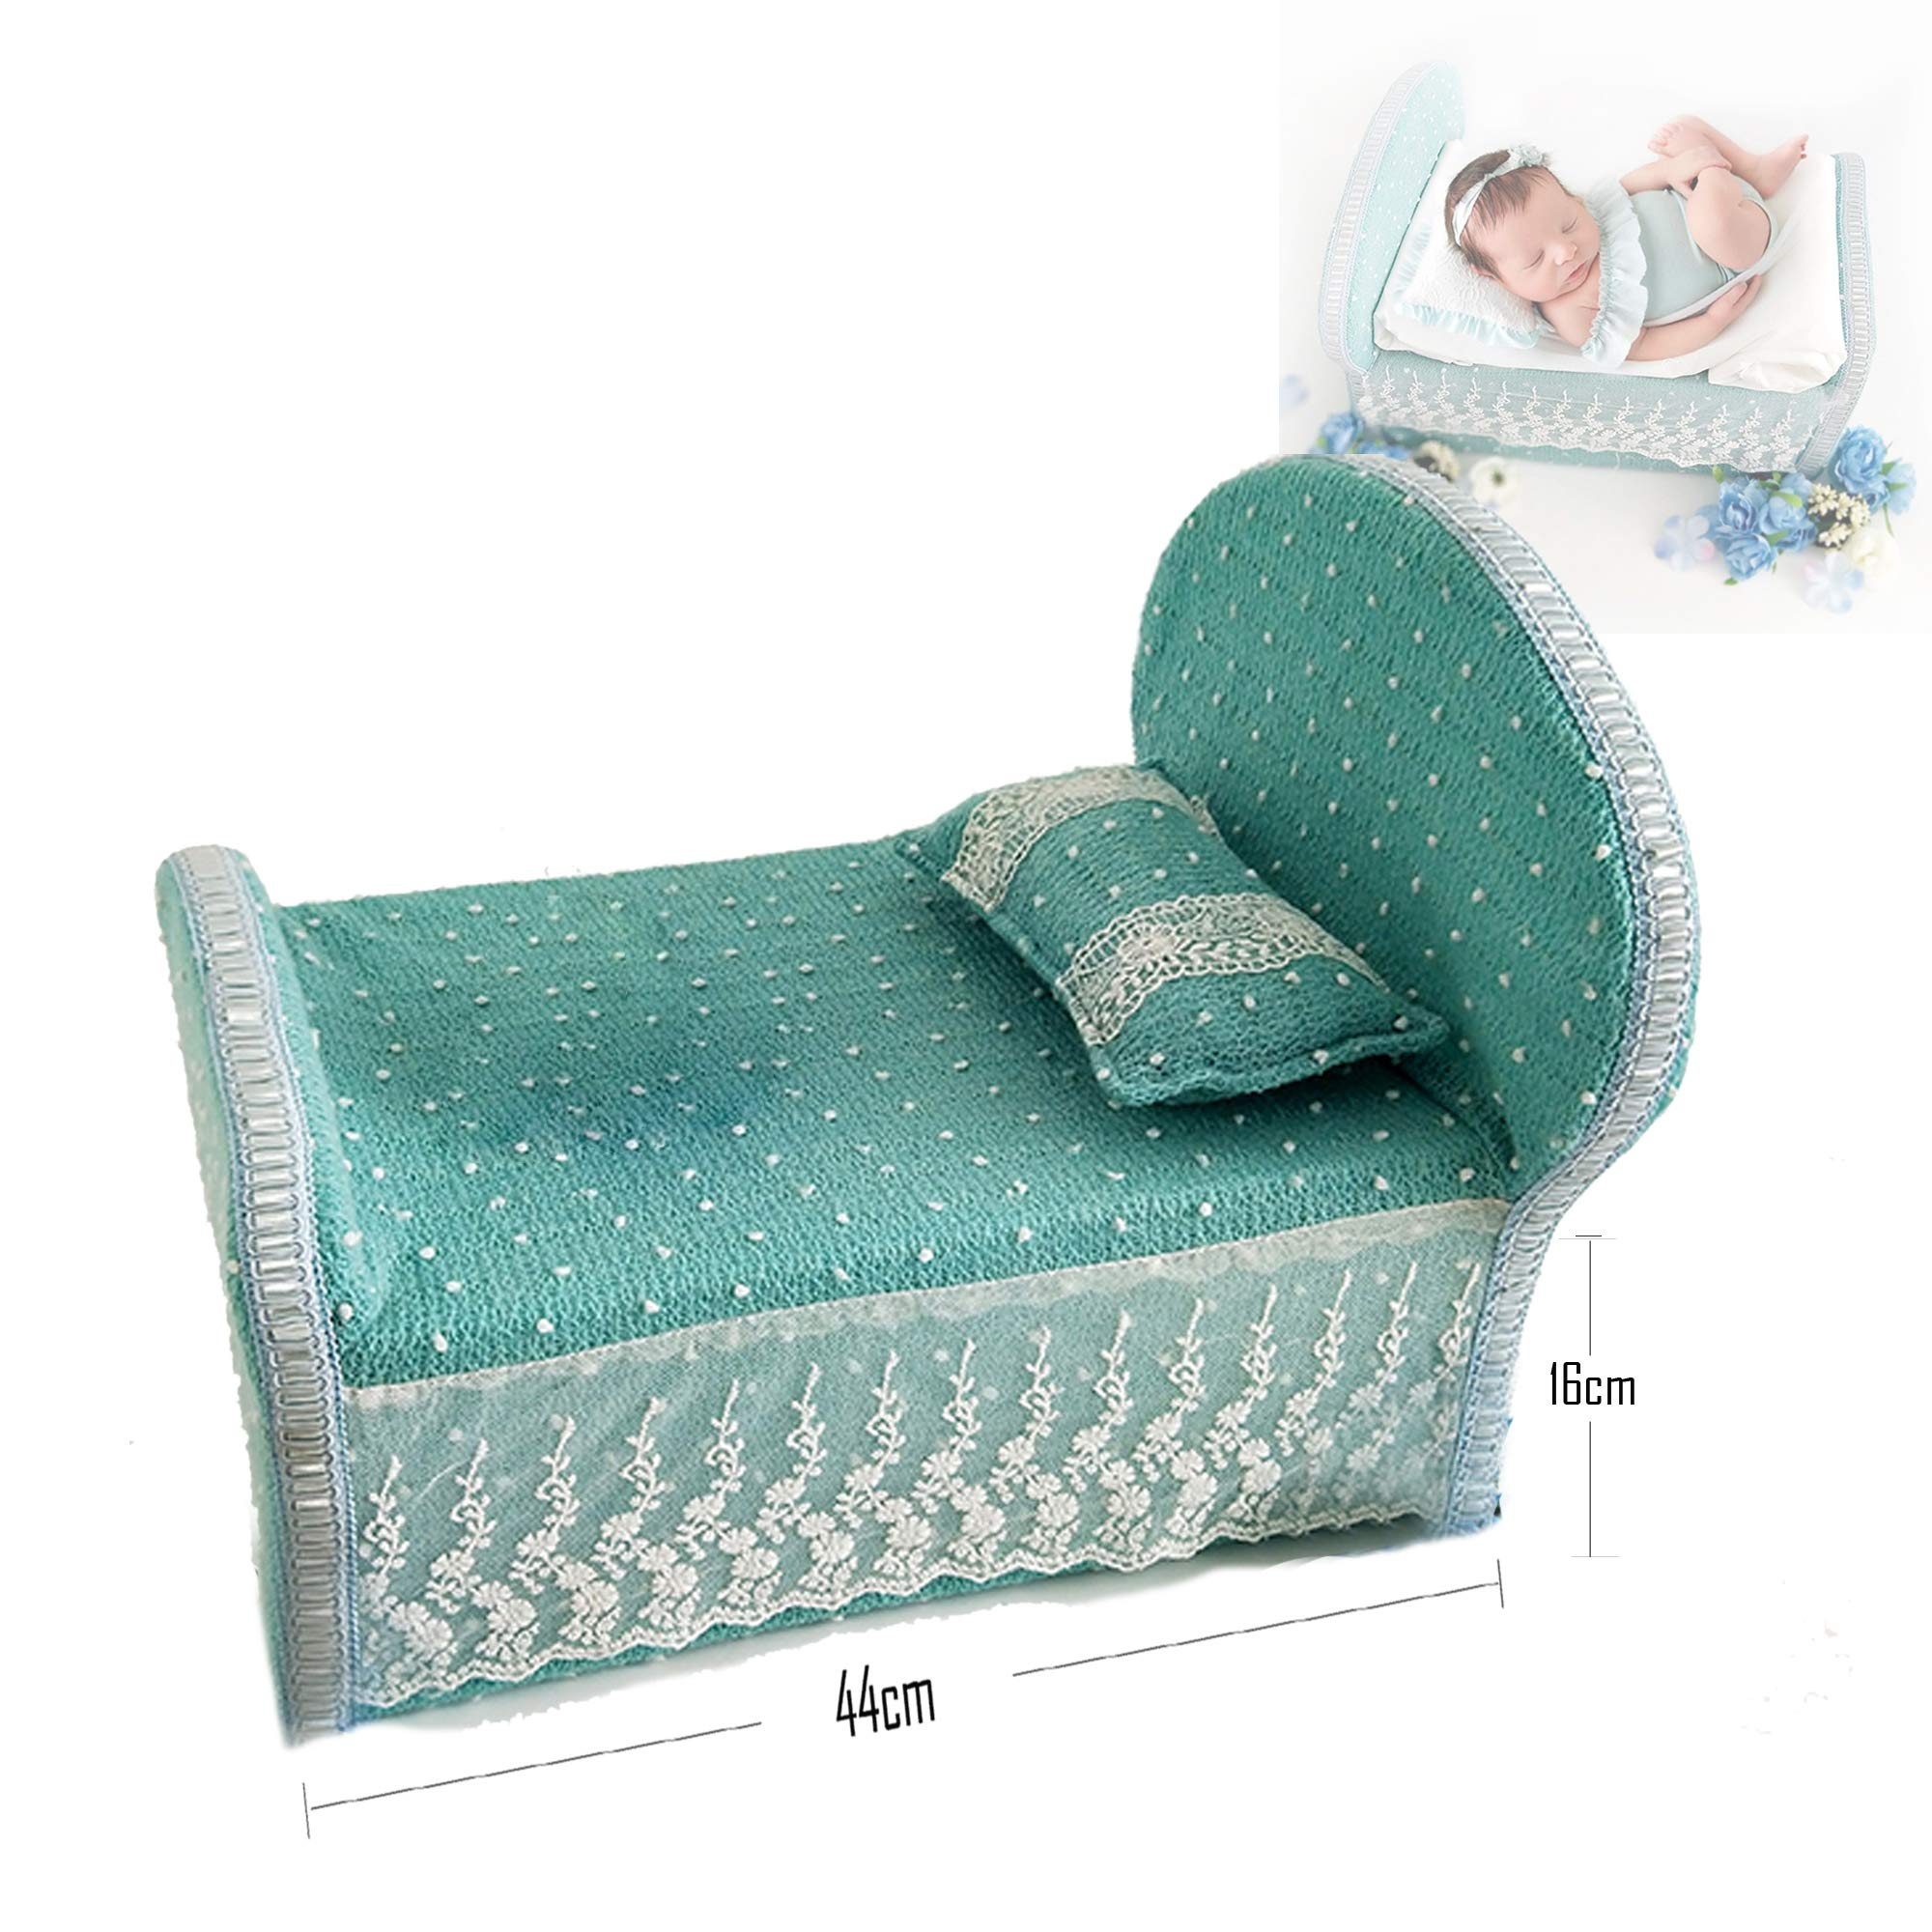 Newborn Foam Bed Photography Props 0-6 Months Professional Posing Aid 17''6.3'' (Blatic)